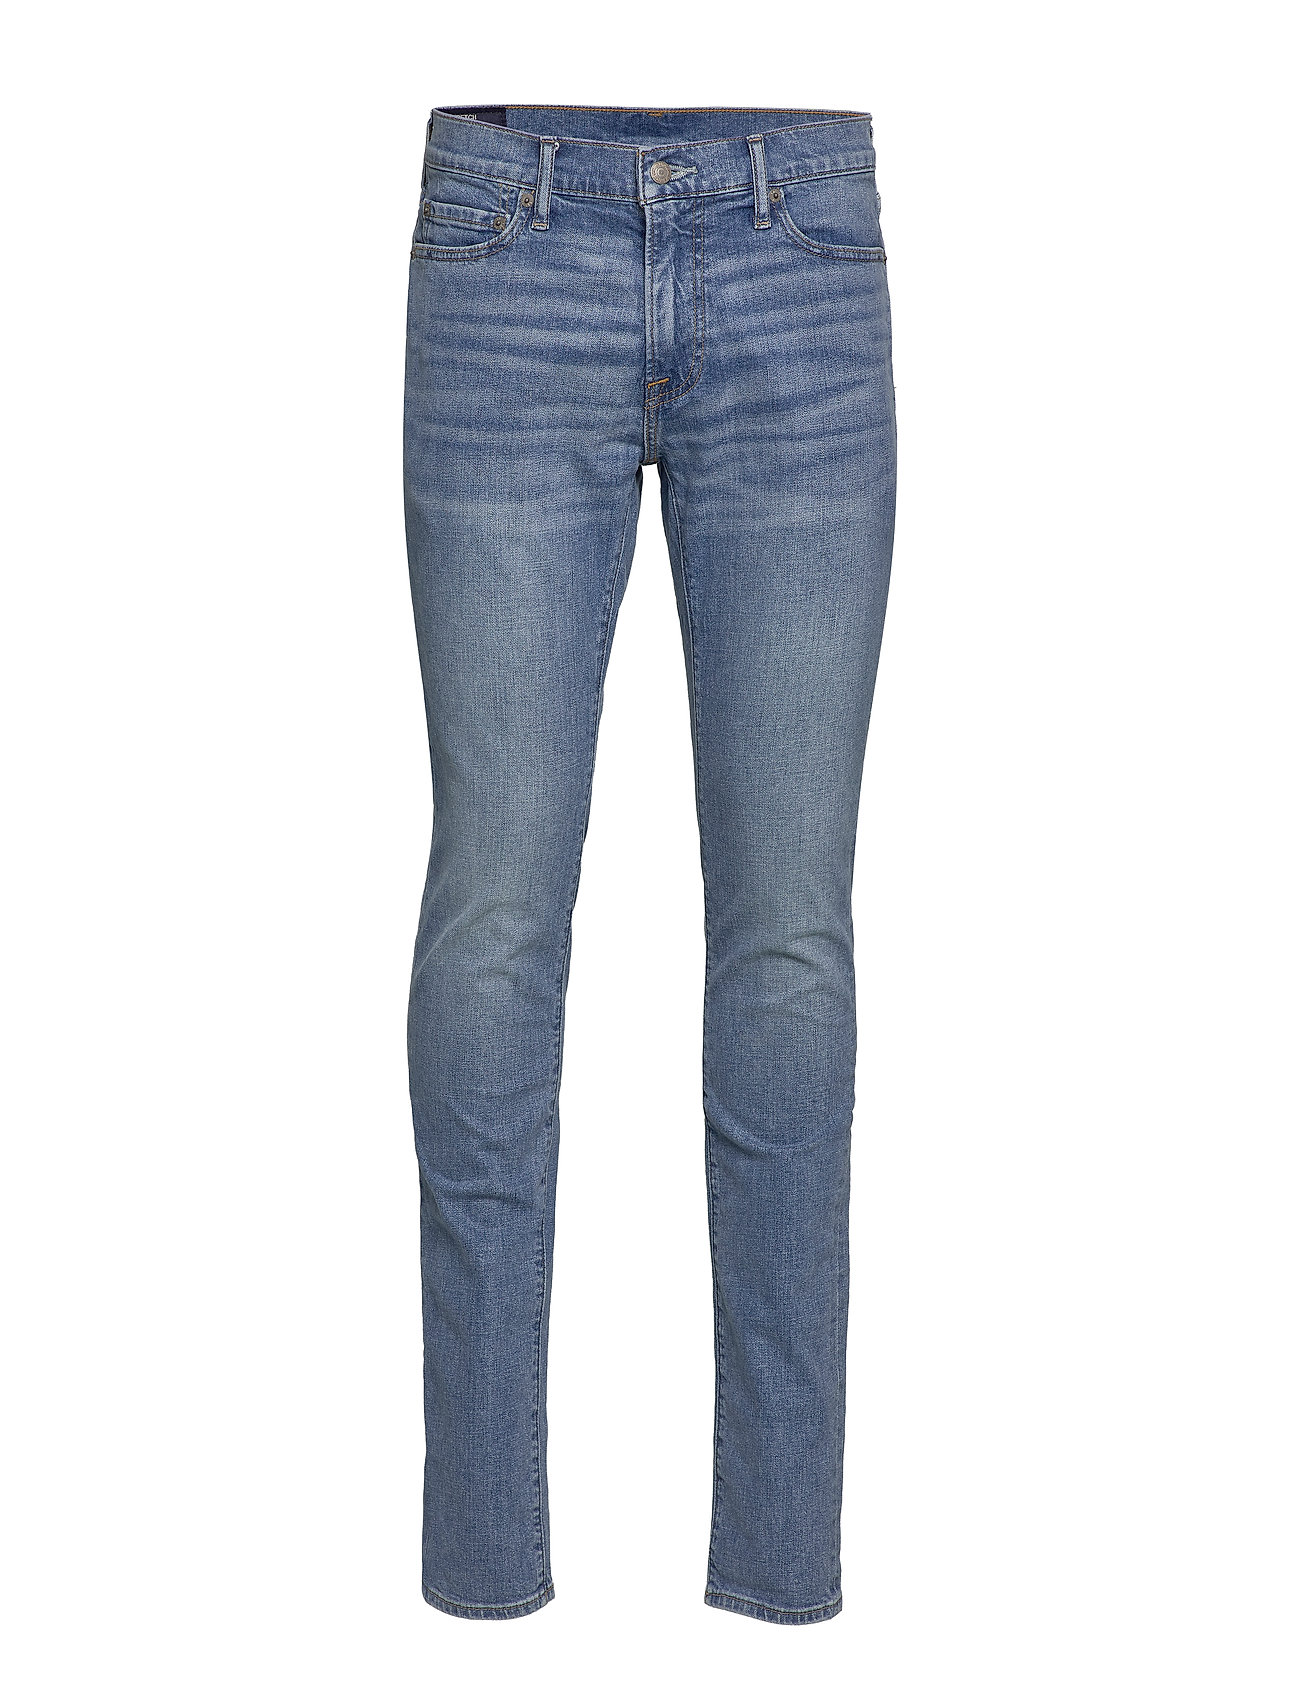 Abercrombie & Fitch Jeans - MEDIUM